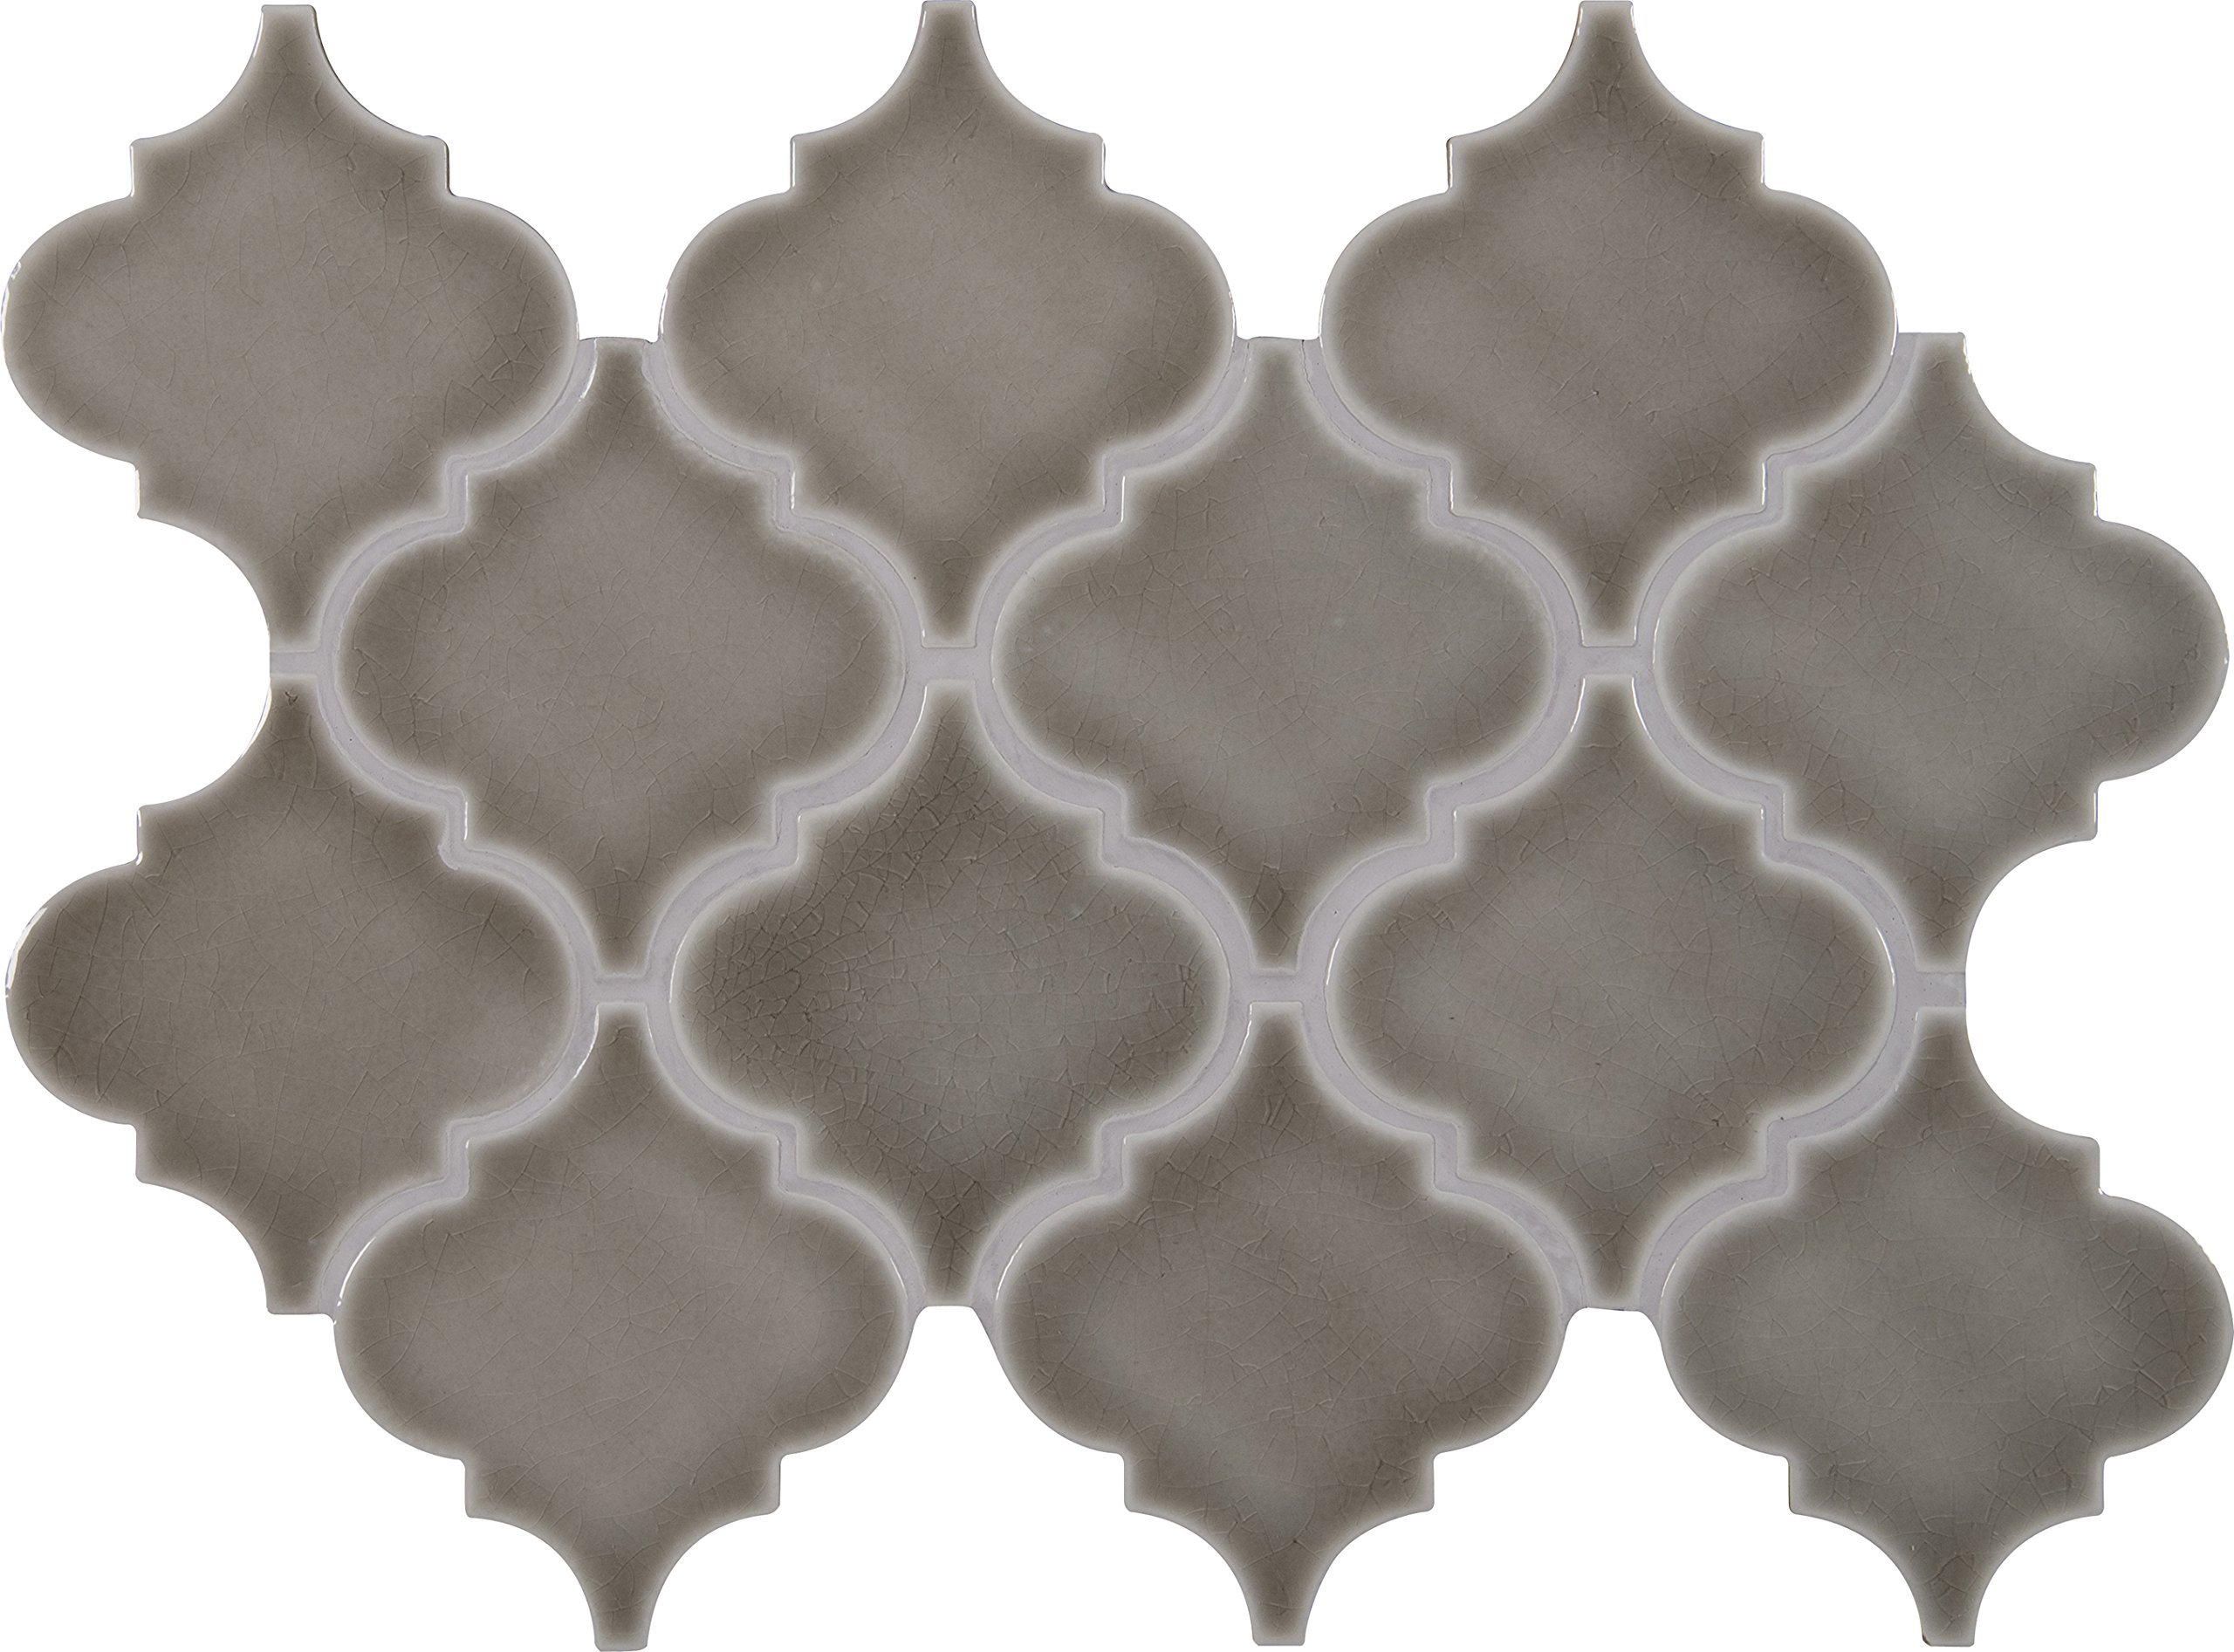 M S International Dove Gray Arabesque 10.83 in. x 15.5 in. x 8 mm Glazed Ceramic Mesh-Mounted Mosaic Wall Tile (11.7 sq.ft./case) by MS International